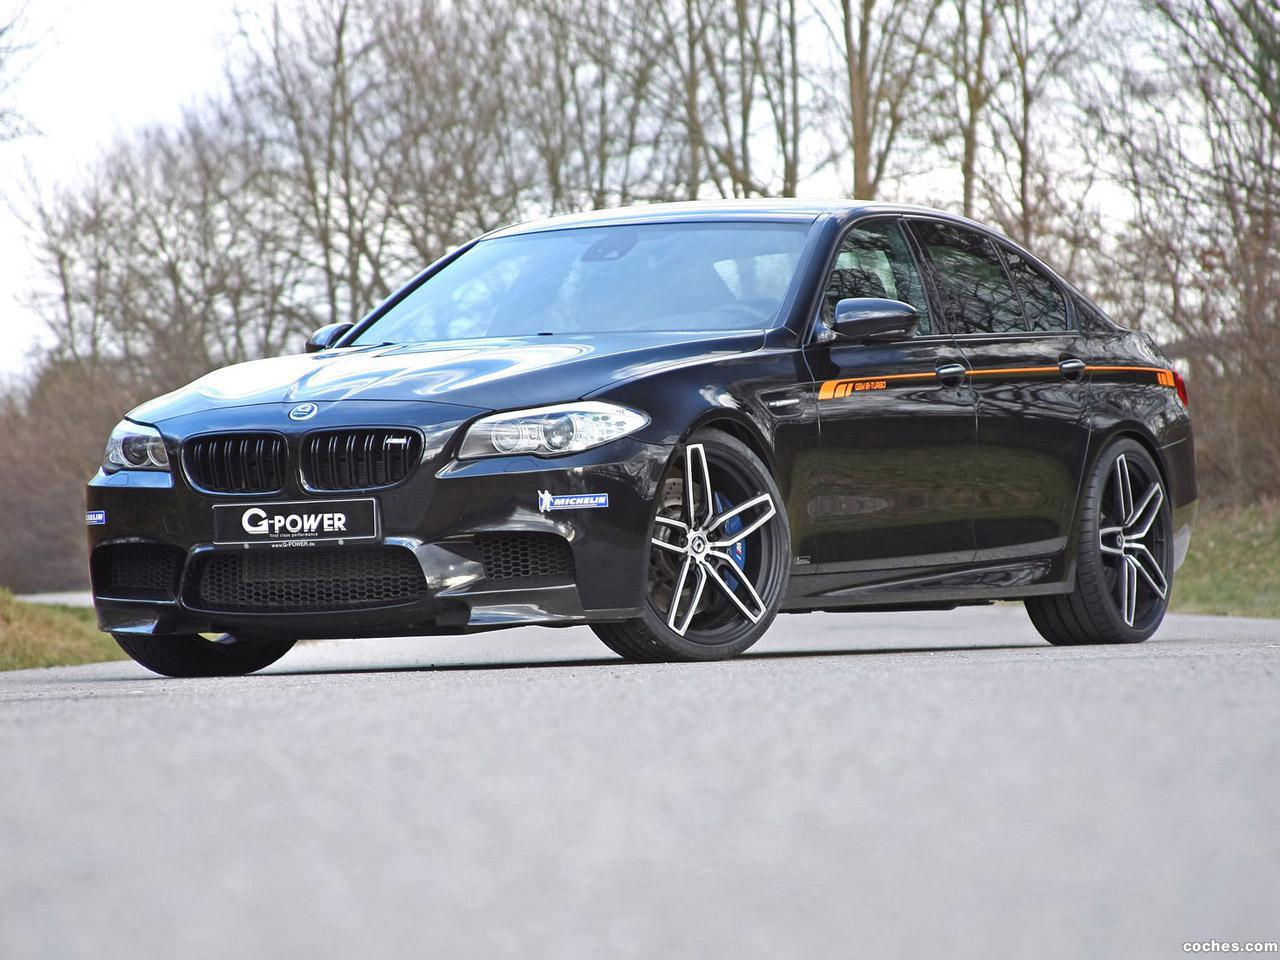 Foto 0 de G-power BMW M5 F10 2015